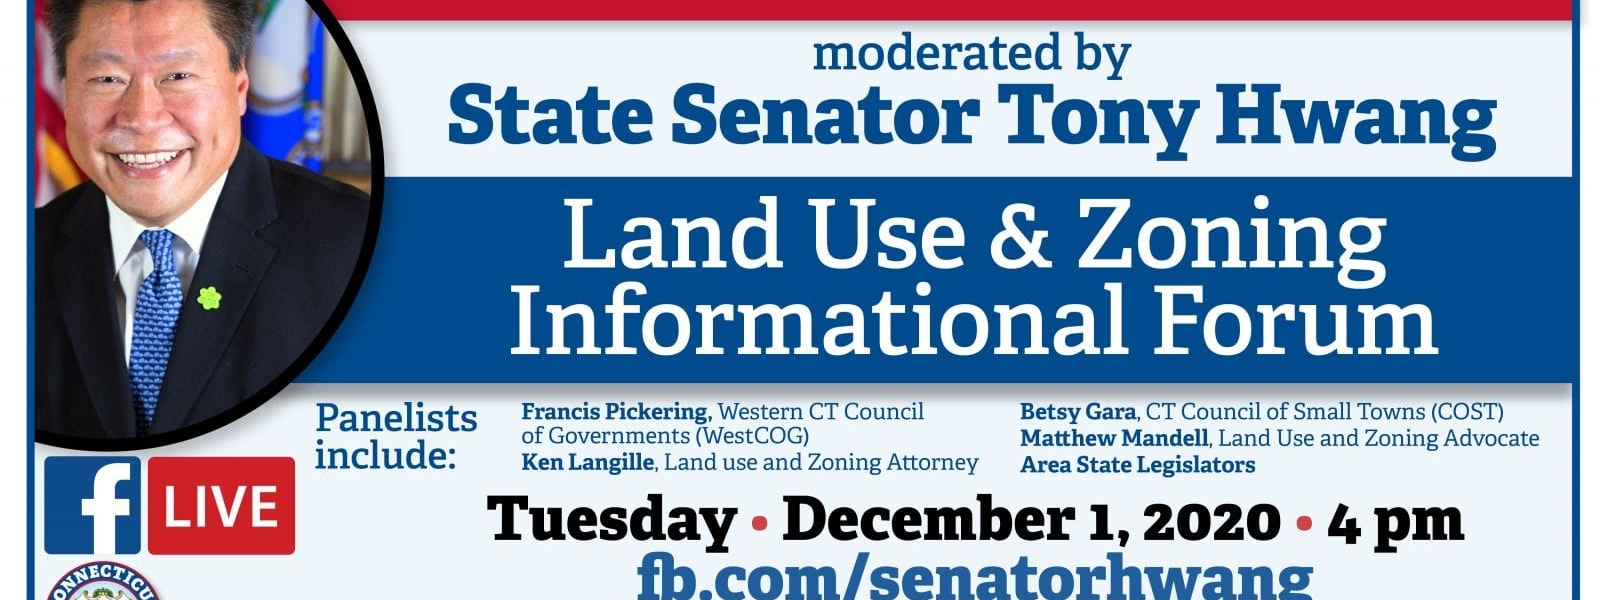 Land Use and Zoning Legislation in CT General Assembly Impacting Local Communities Informational Forum